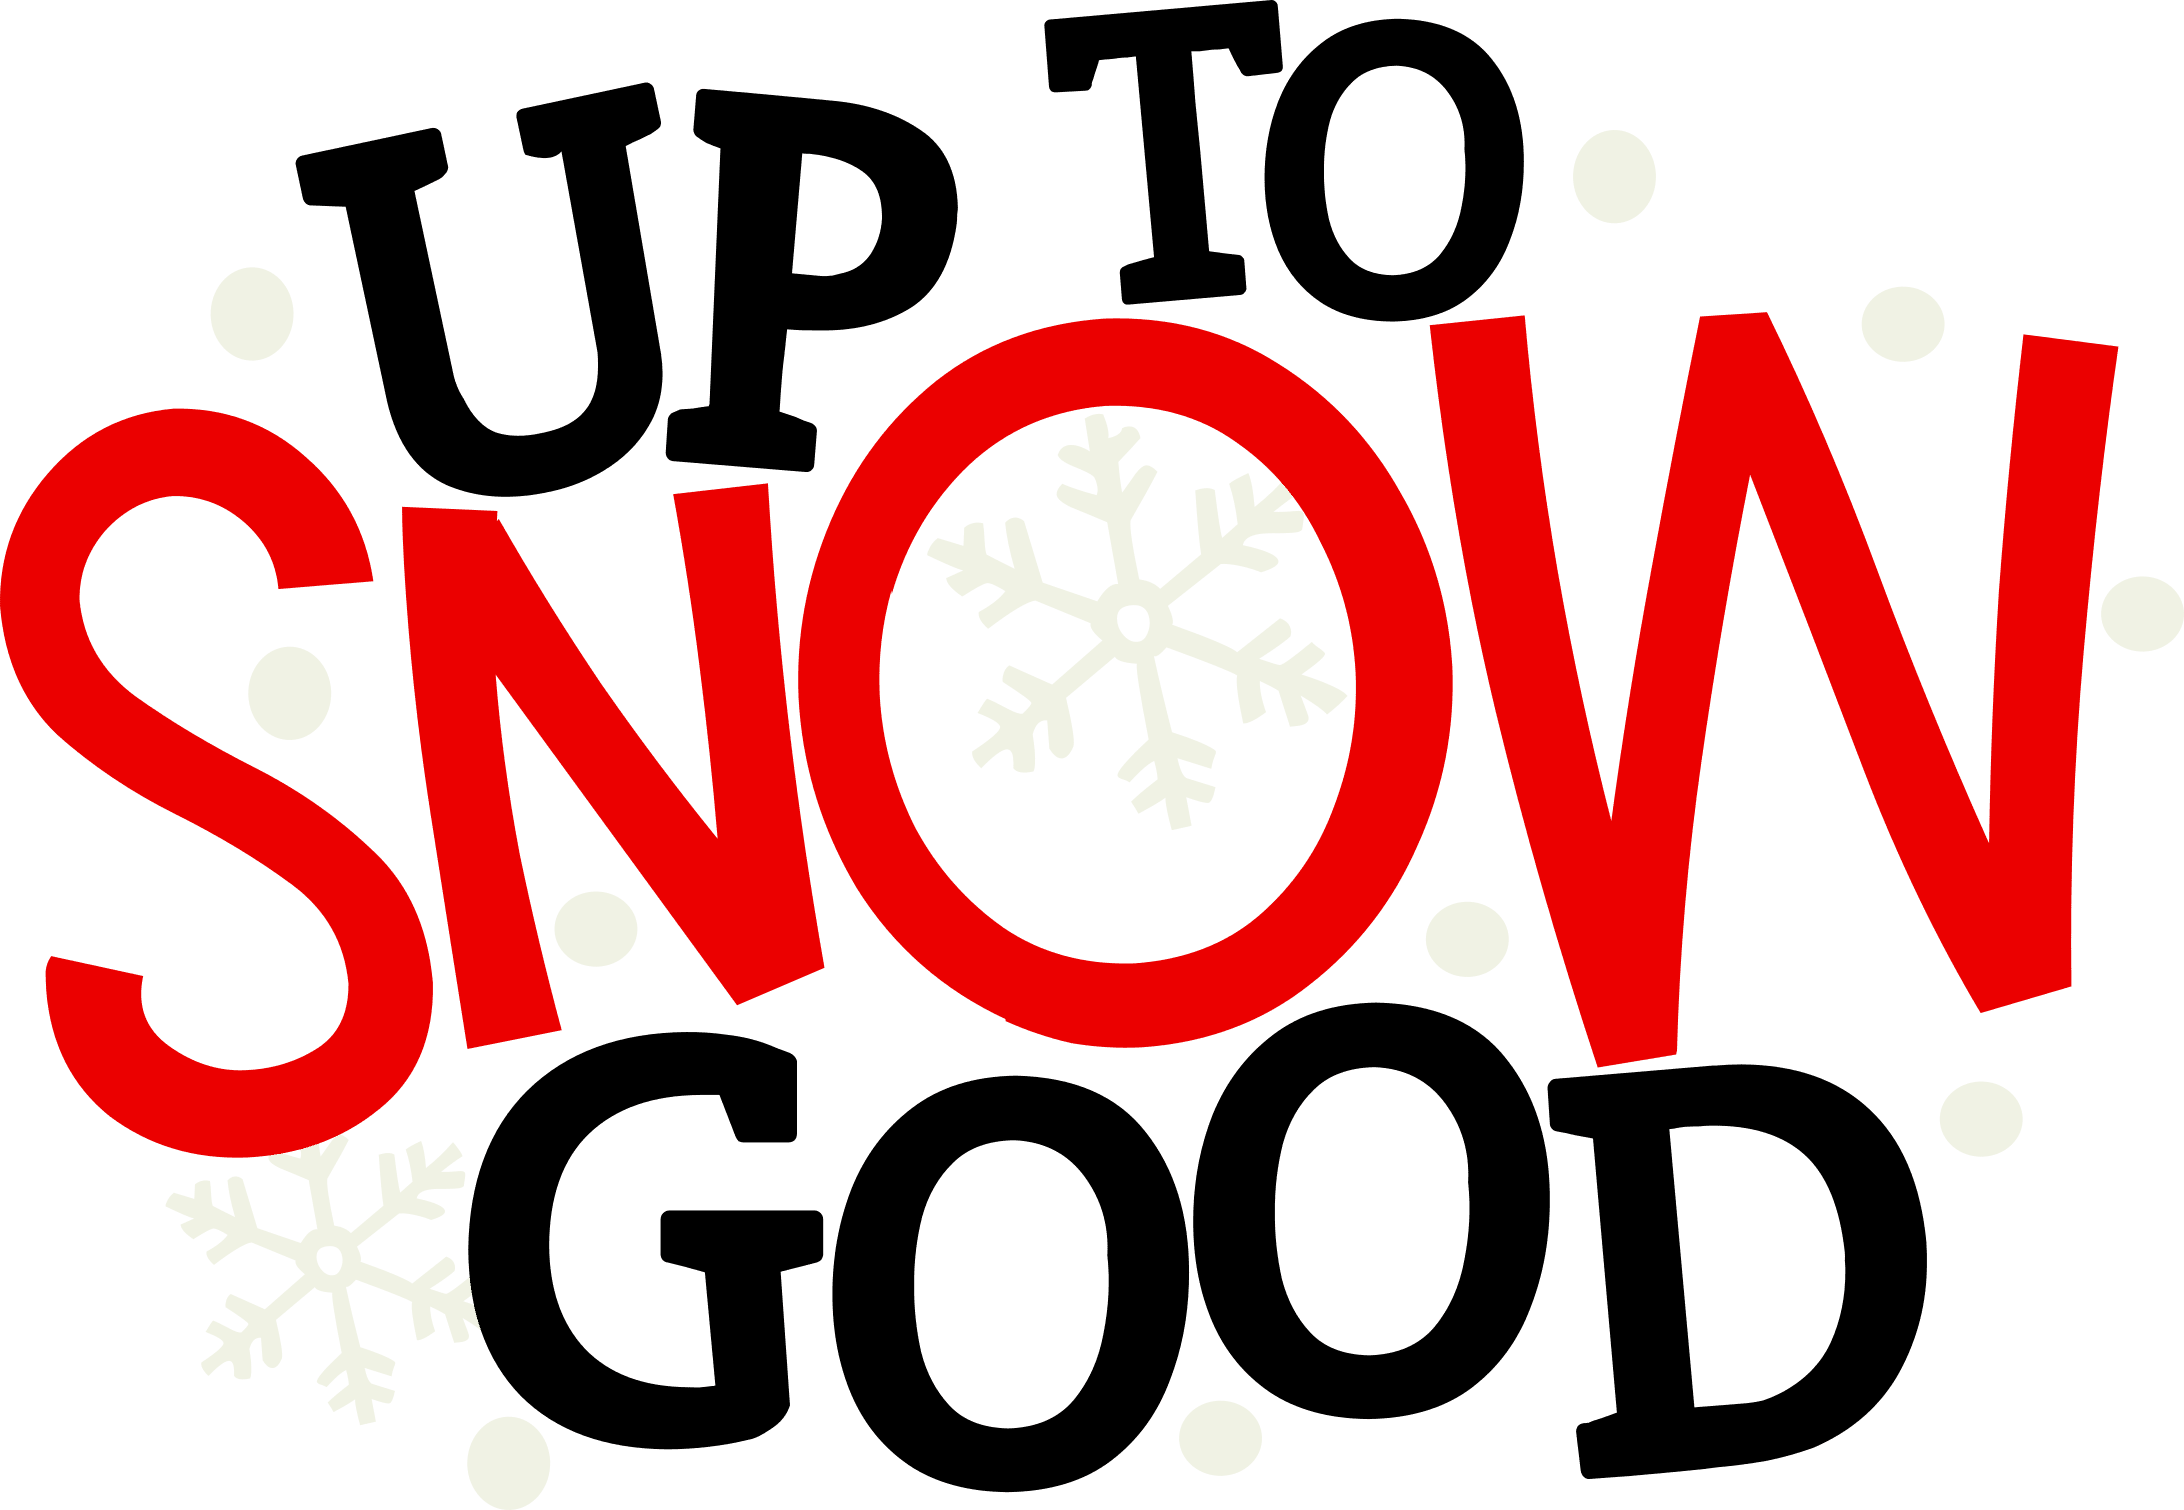 Up to Snow Good (design only)